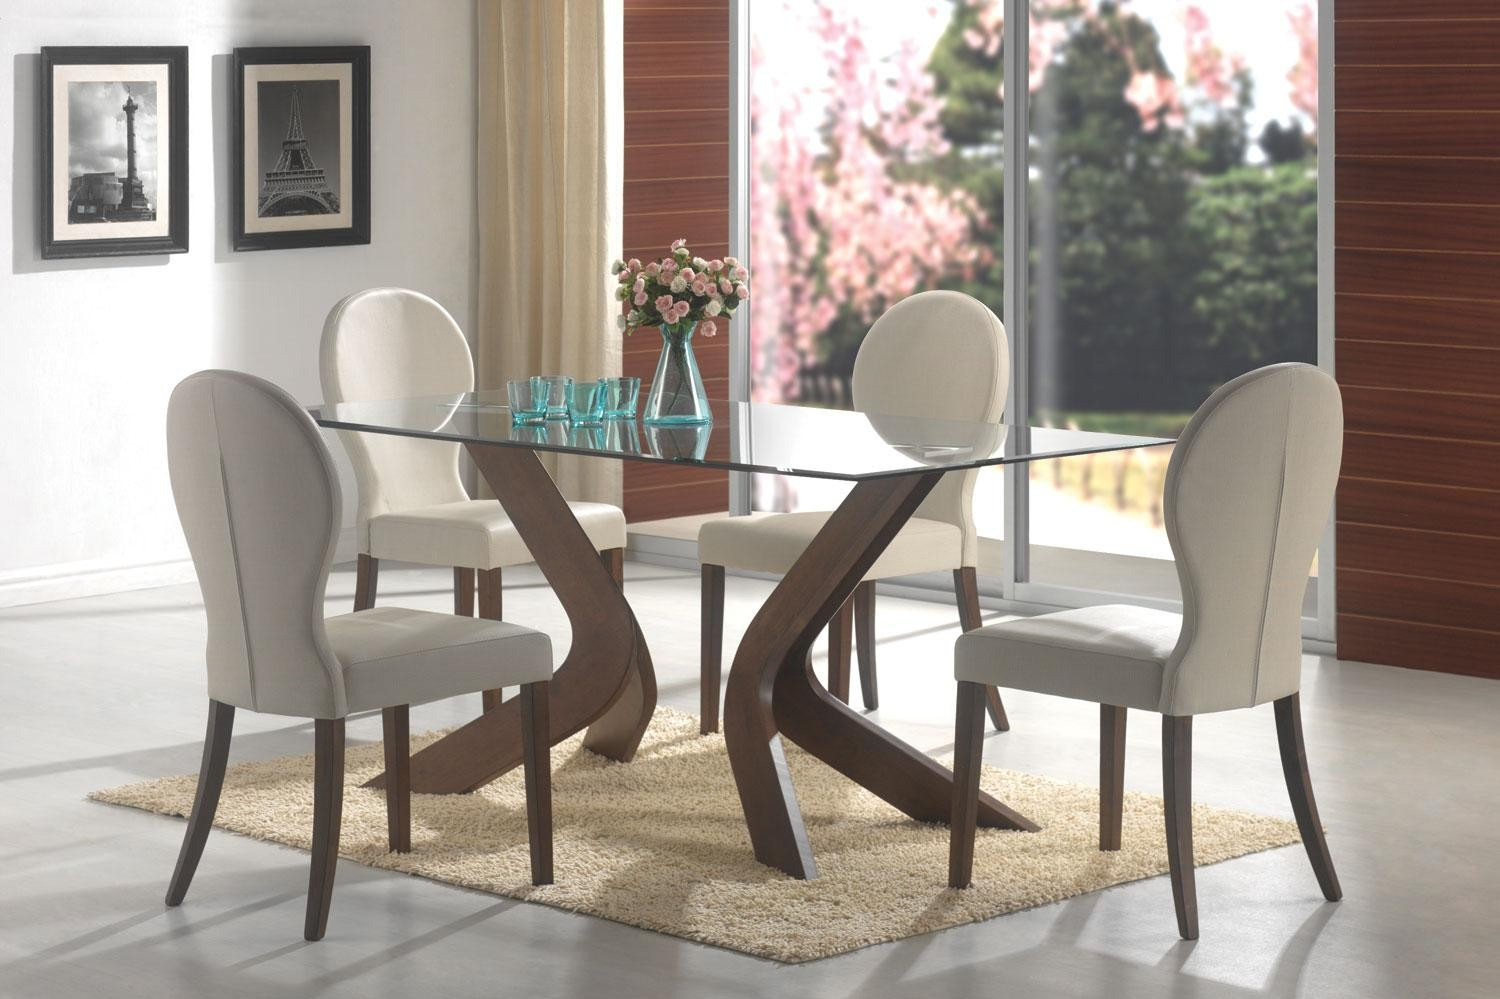 Choosing glass dining room tables for small space midcityeast dainty chair and glass dining room tables on smooth carpet dzzzfo